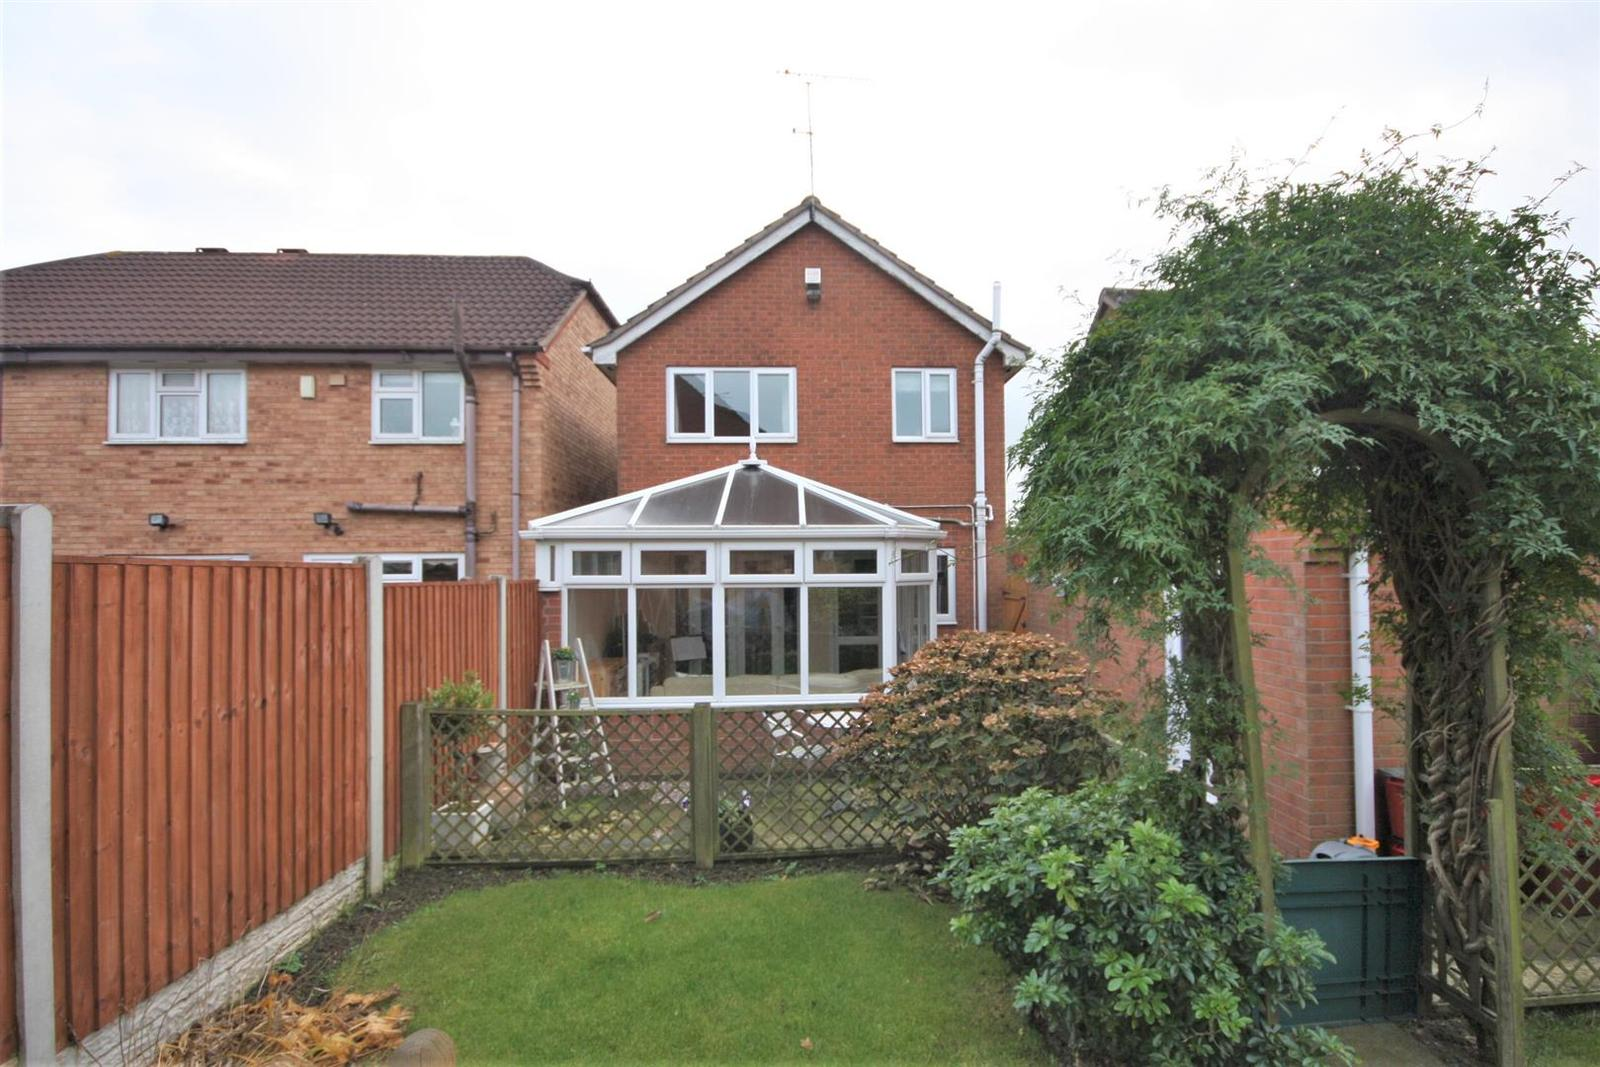 3 Bedrooms Property for sale in Robin Road, Coalville